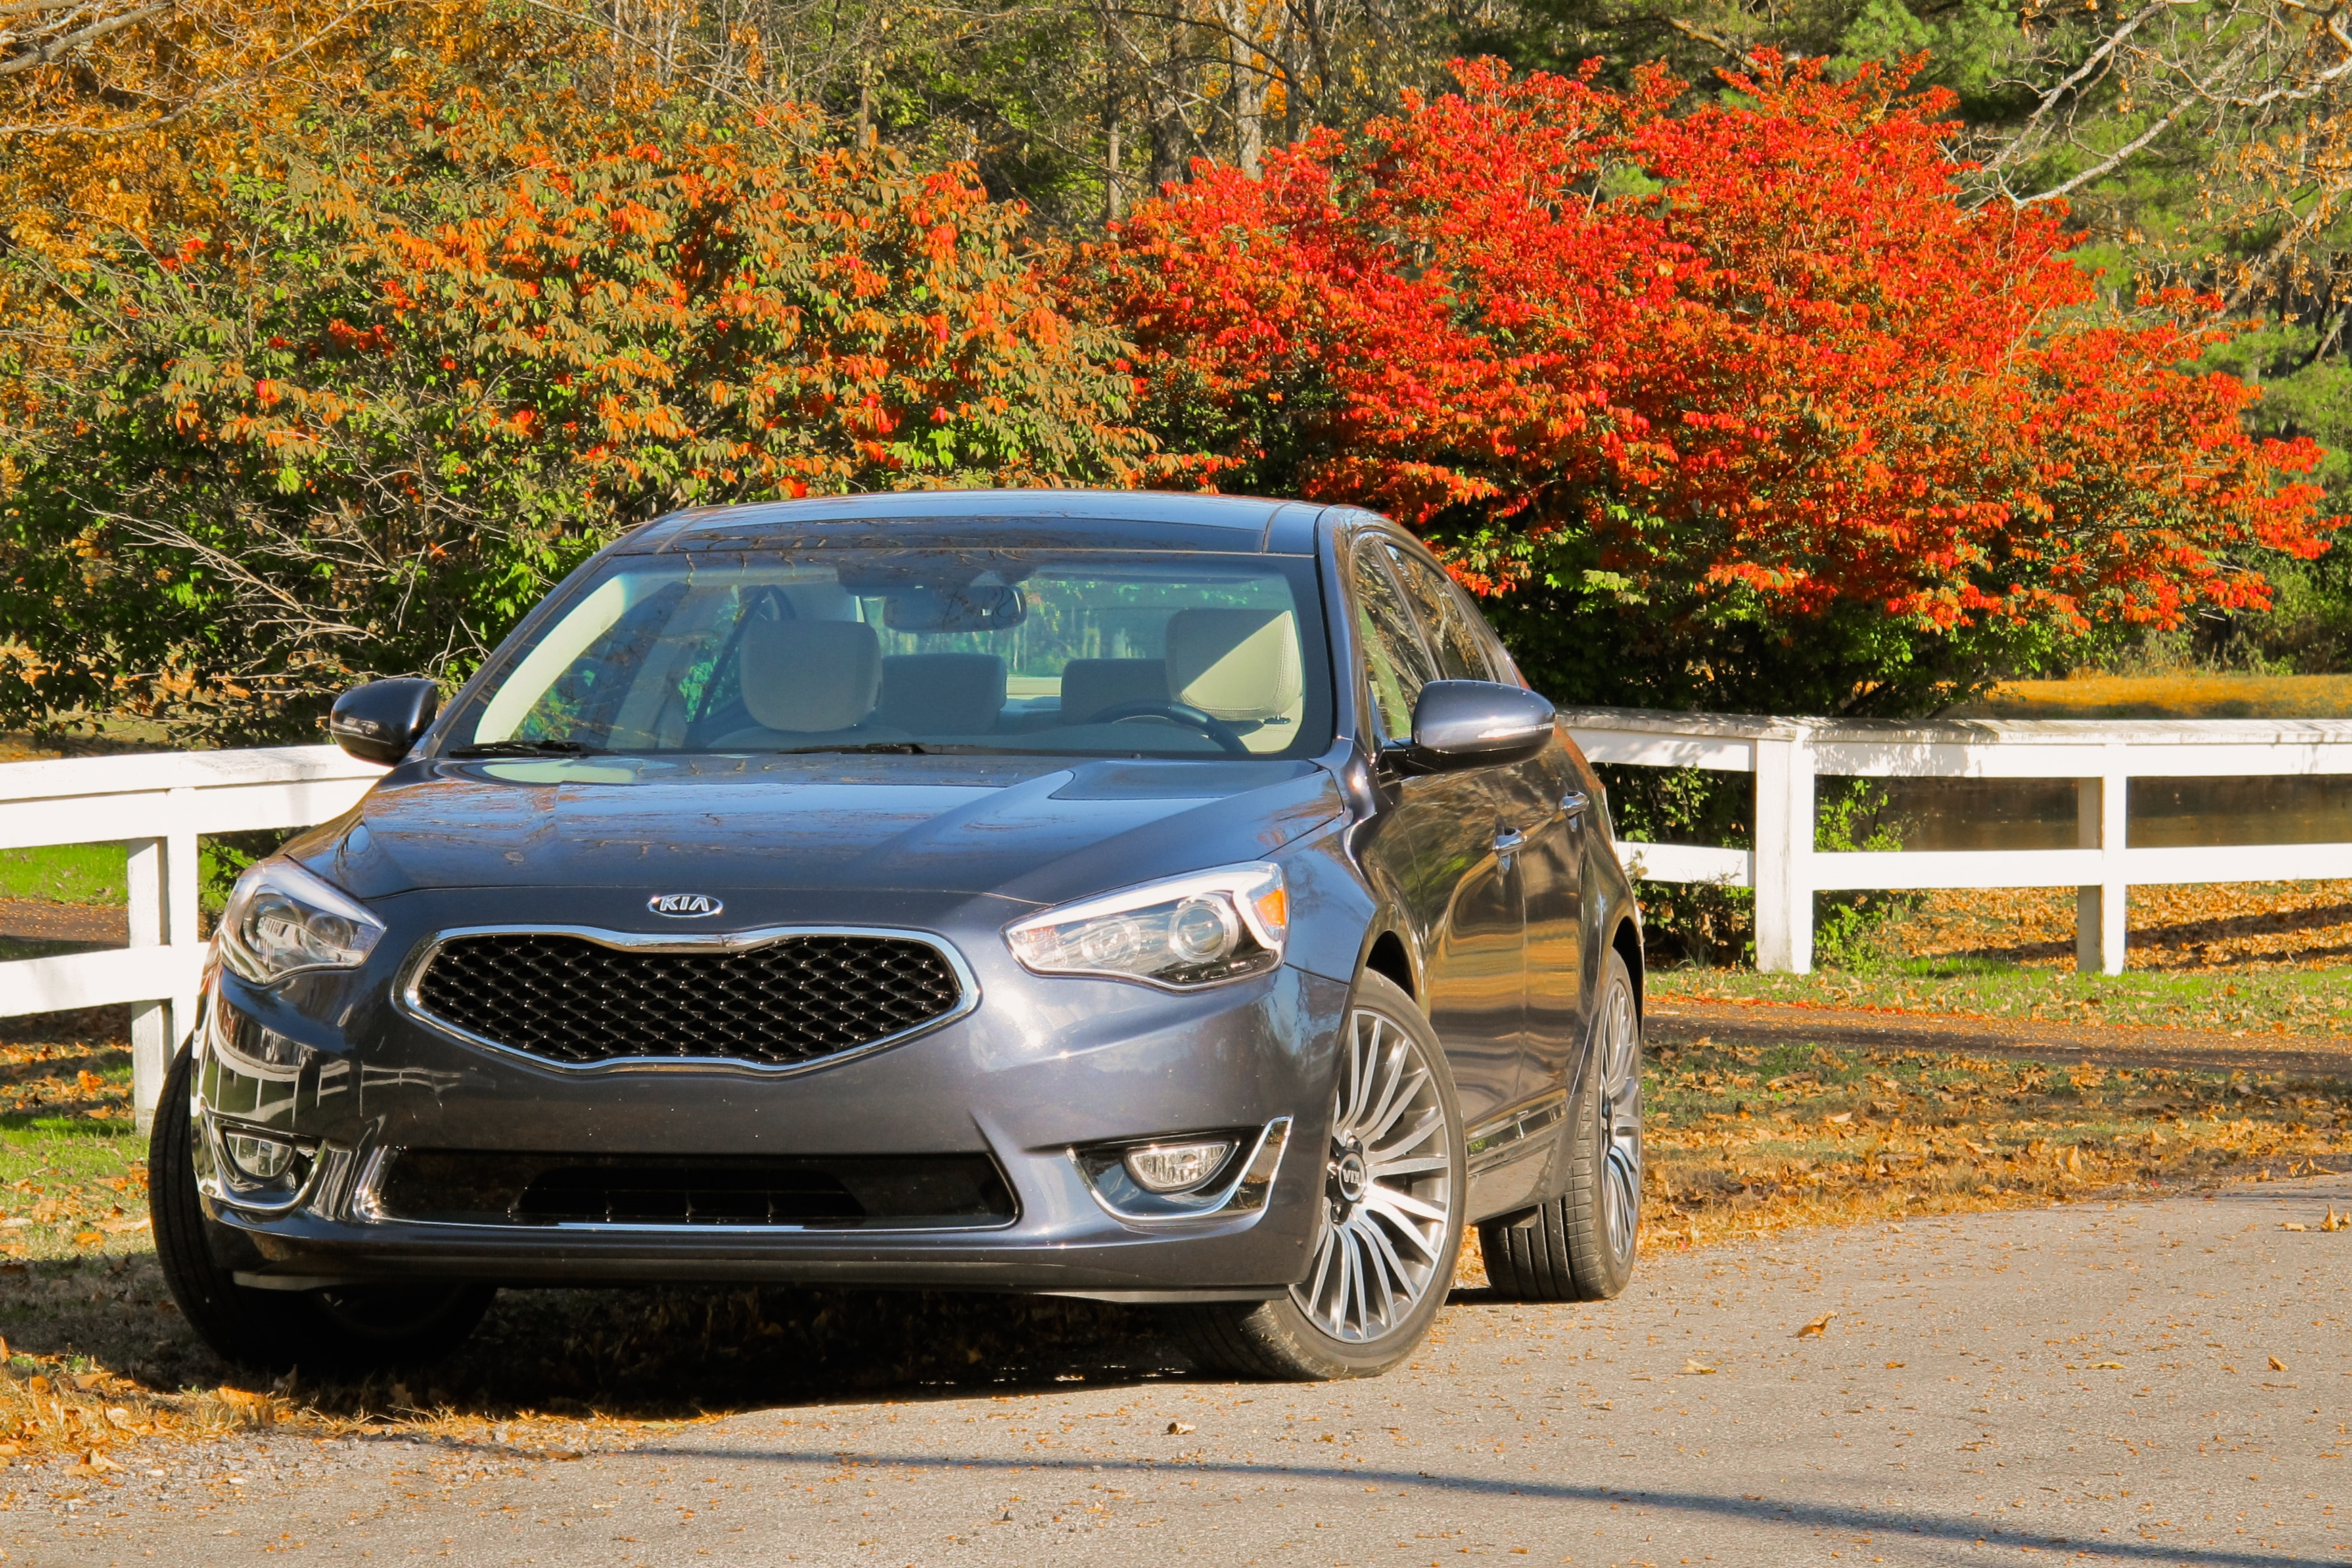 about blue limited cars cadenza truth the gravity a buick of rear image tonn chris better review kia